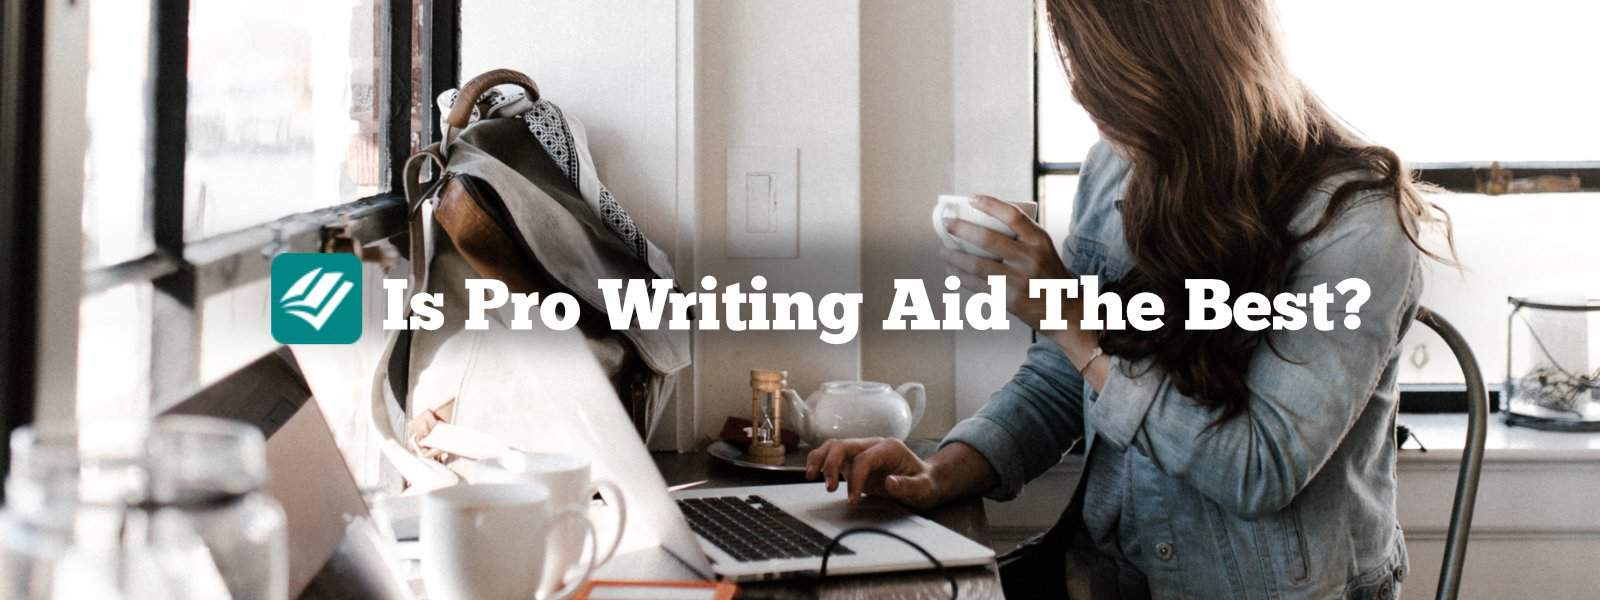 Is-pro-writing-aid-the-best